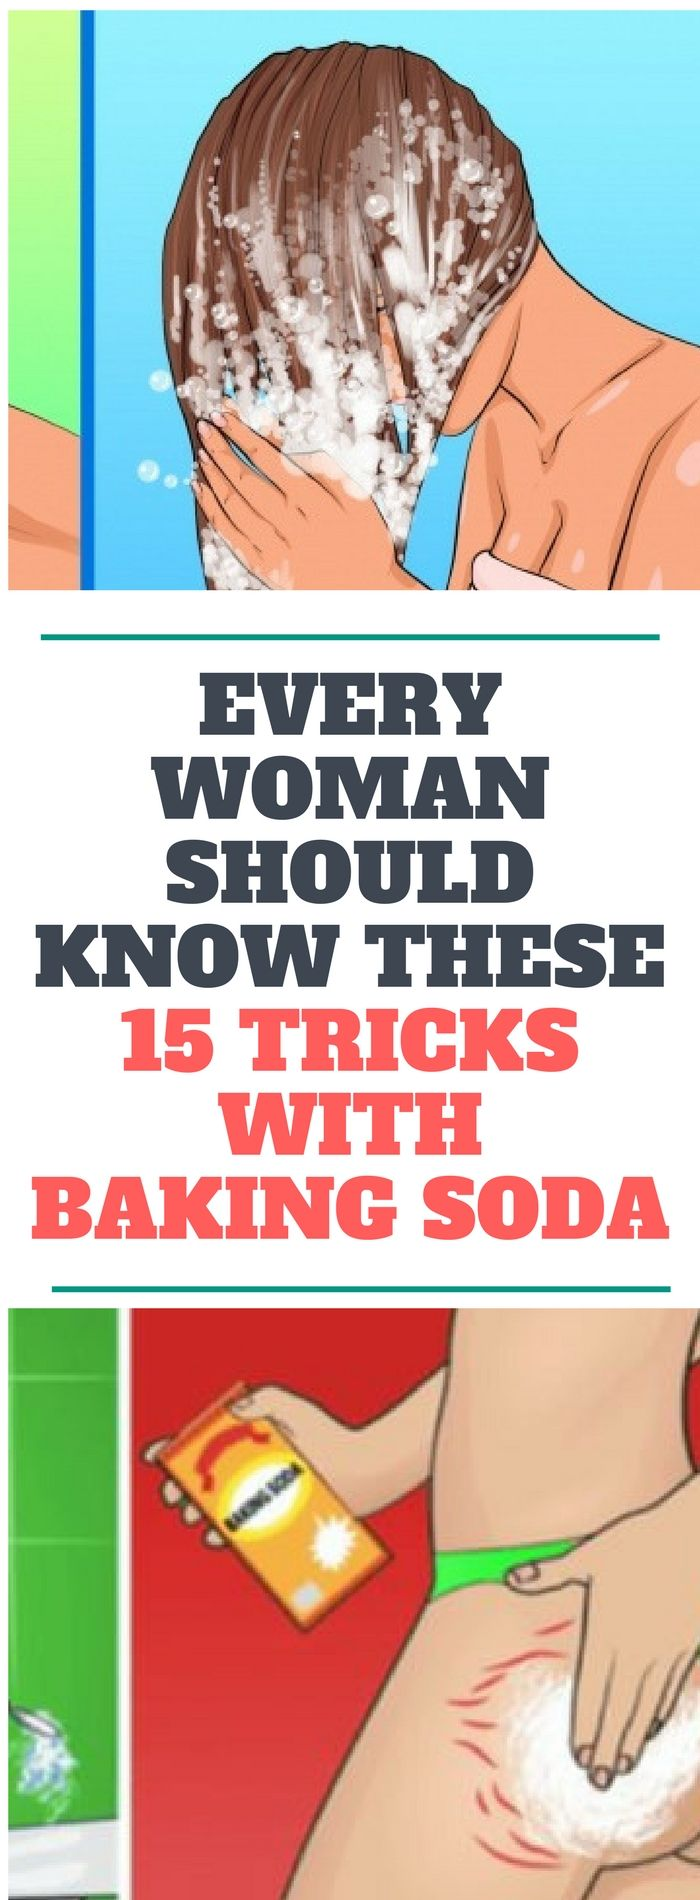 Every Woman Should Know These 15 Tricks With Baking Soda..!! Reed thiss!!!